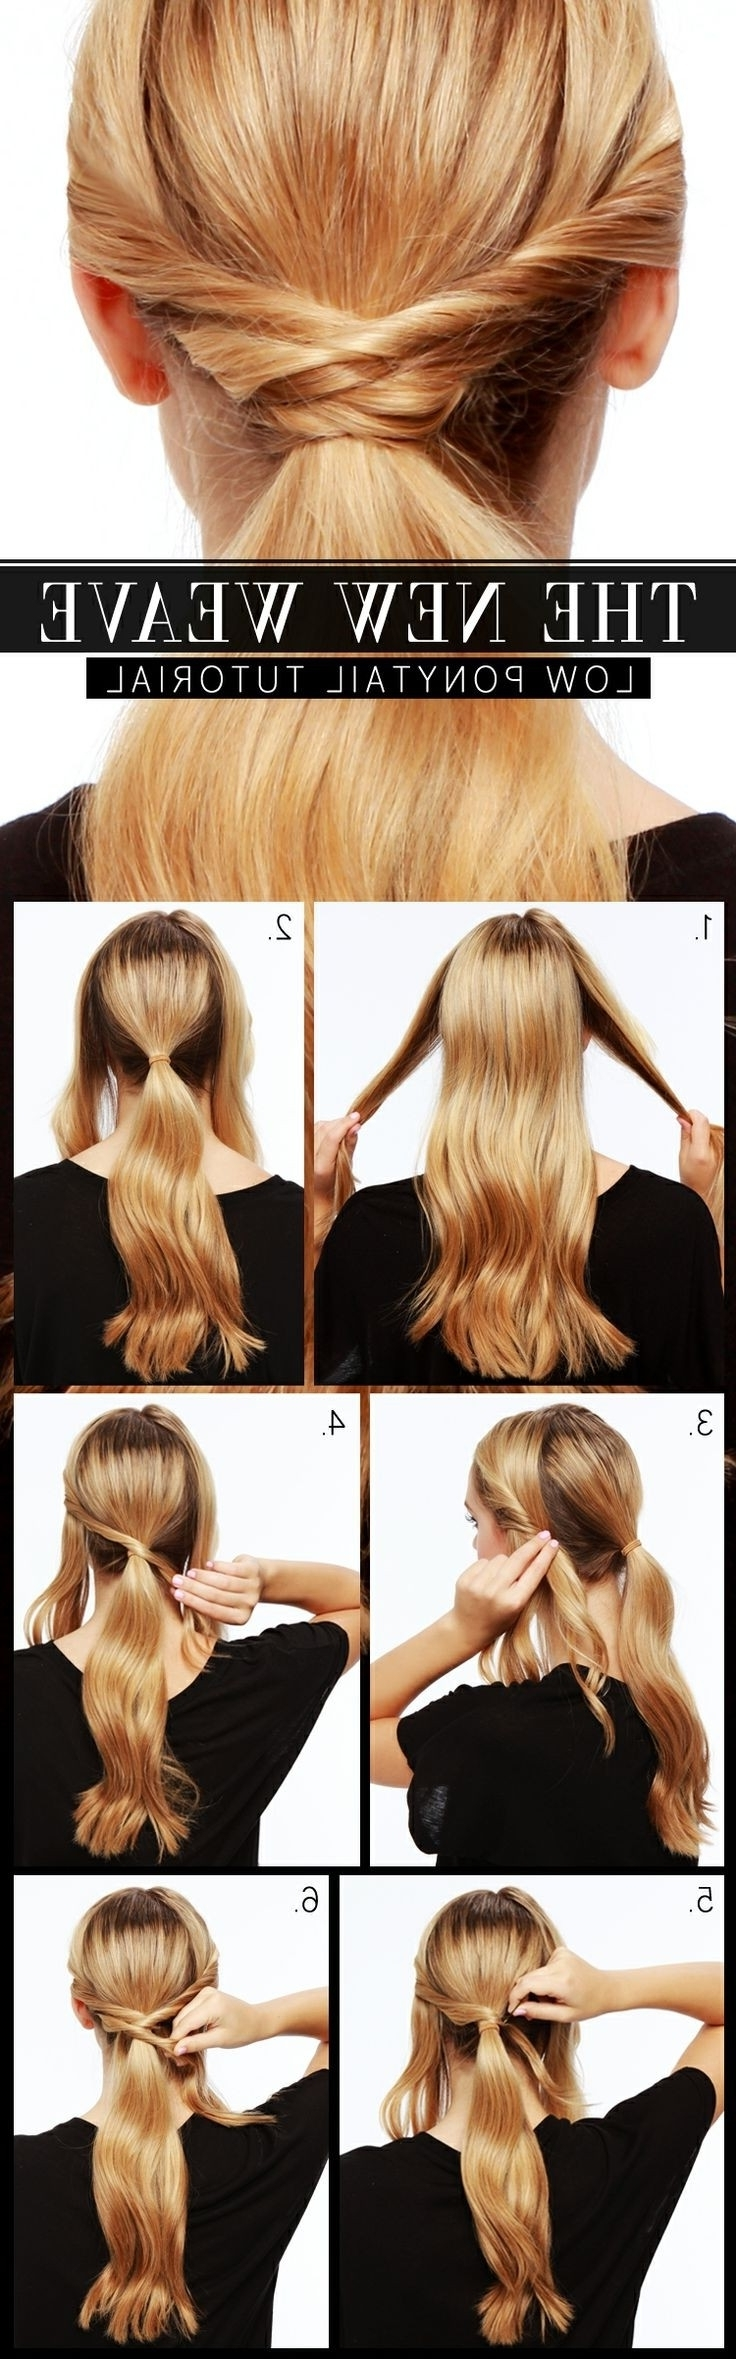 15 Cute And Easy Ponytail Hairstyles Tutorials – Popular Haircuts With Fashionable Low Twisted Pony Hairstyles For Ombre Hair (View 6 of 20)